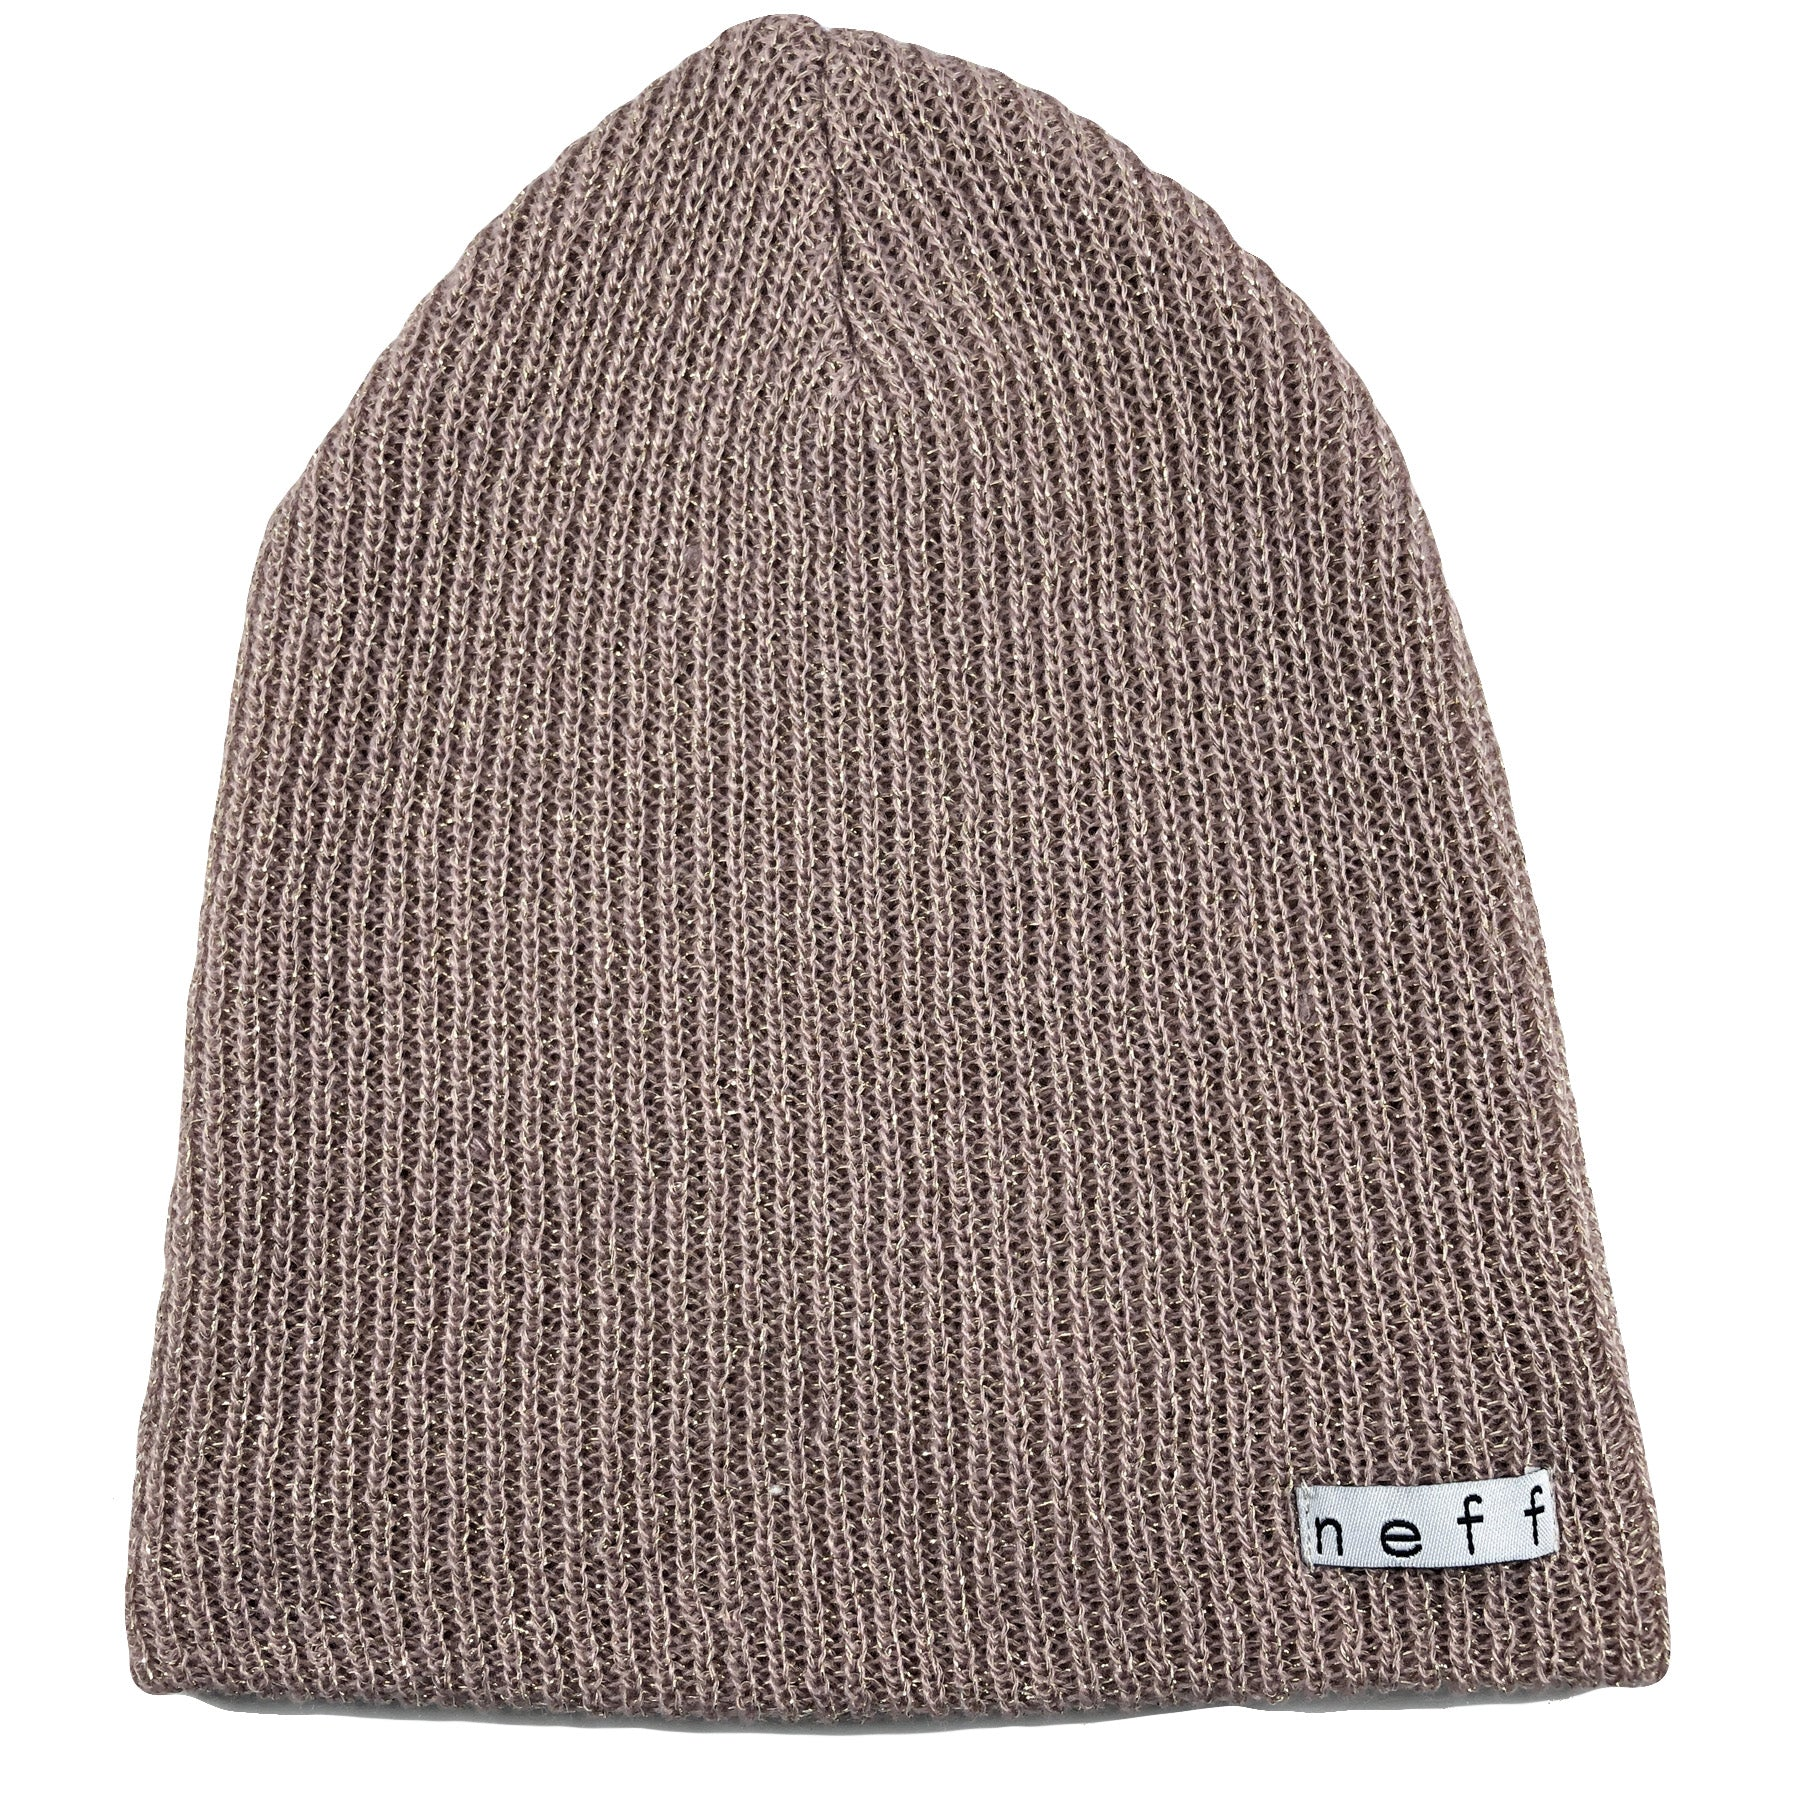 ac6d02bbd1a the rose gold metallic neff daily knit beanie is a rose gold color with  gold metallic